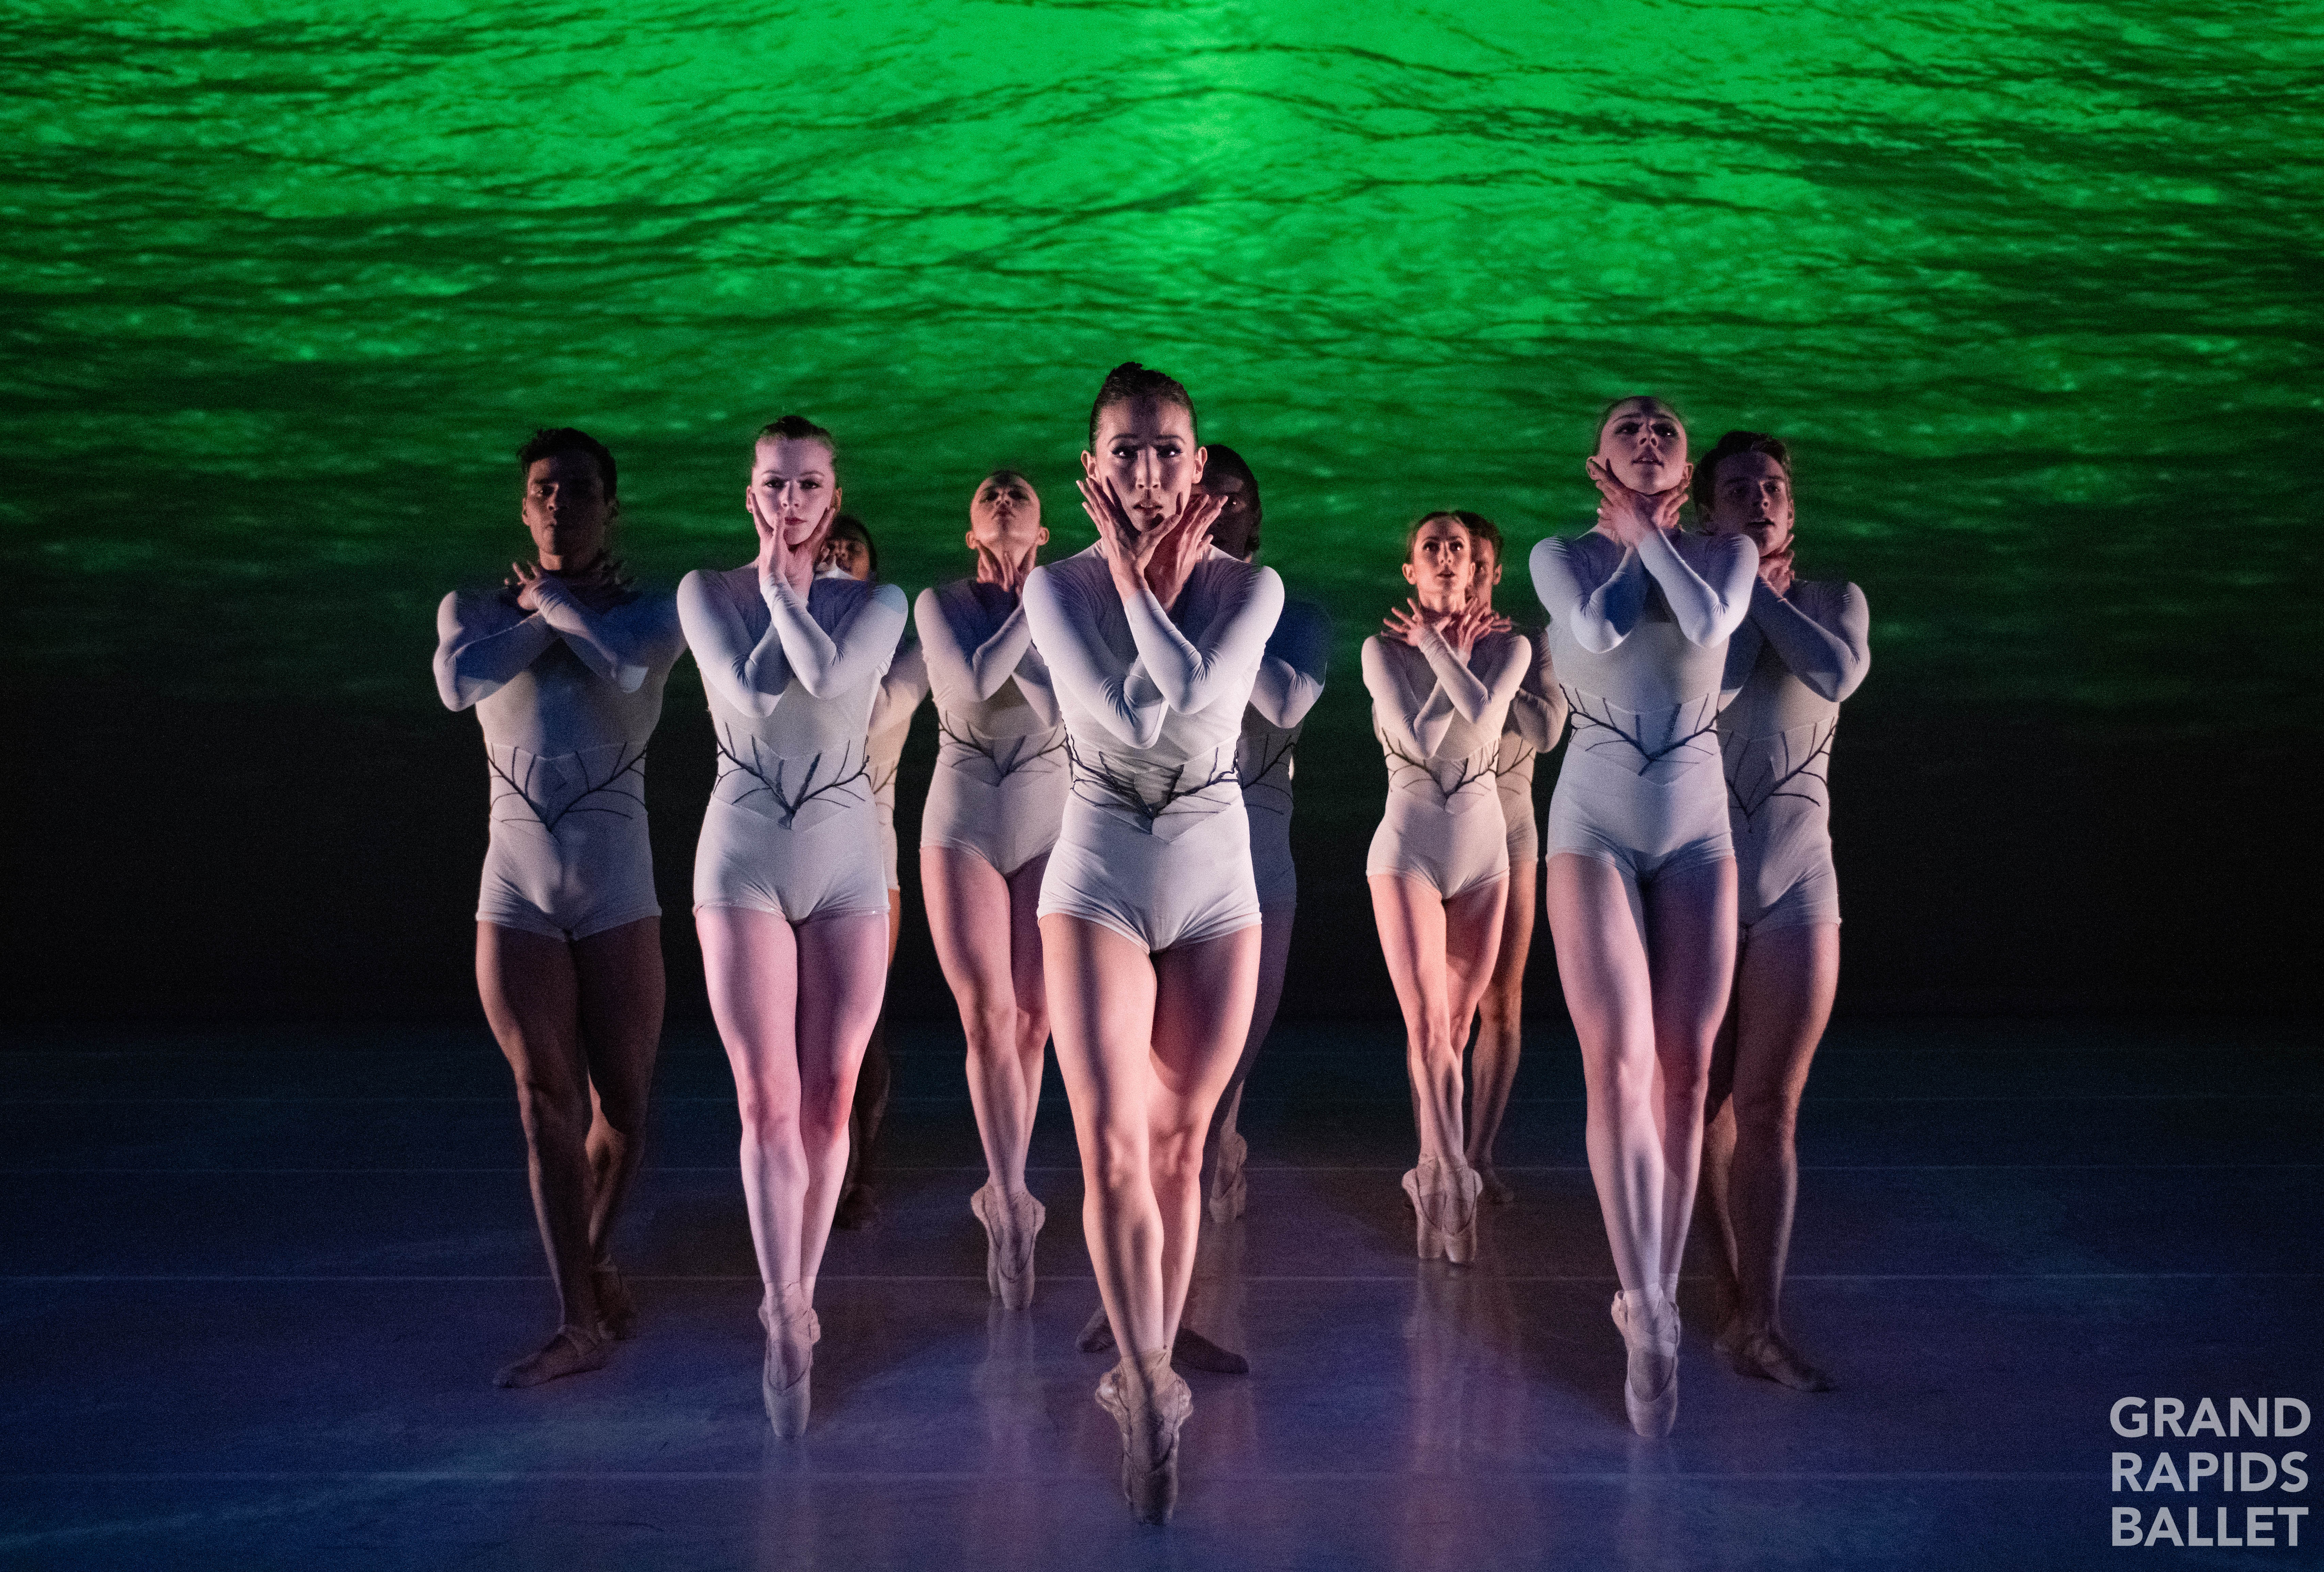 Review: Grand Rapids Ballet's 'Movemedia: Handmade' shines